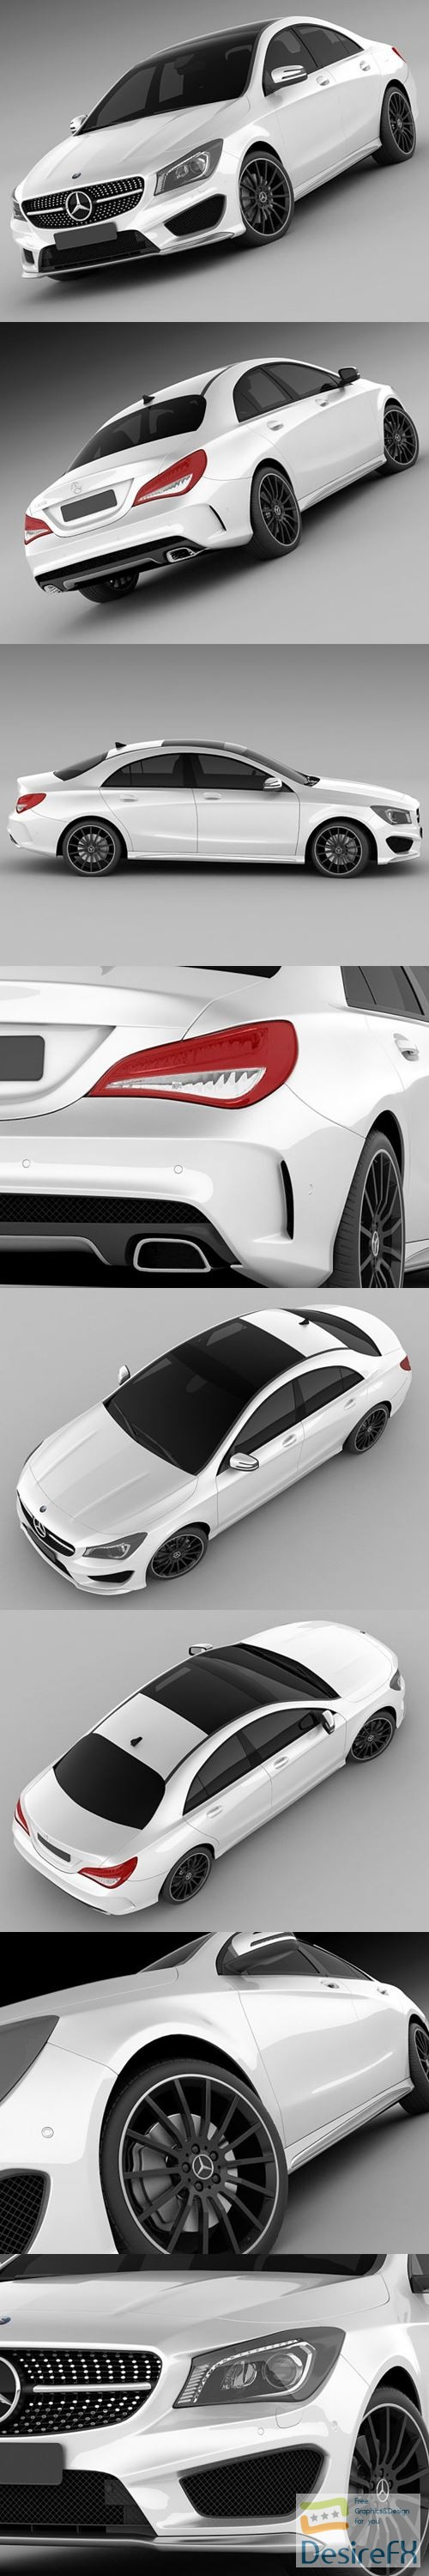 3d-models - Mercedes-Benz CLA AMG 2014 3D Model